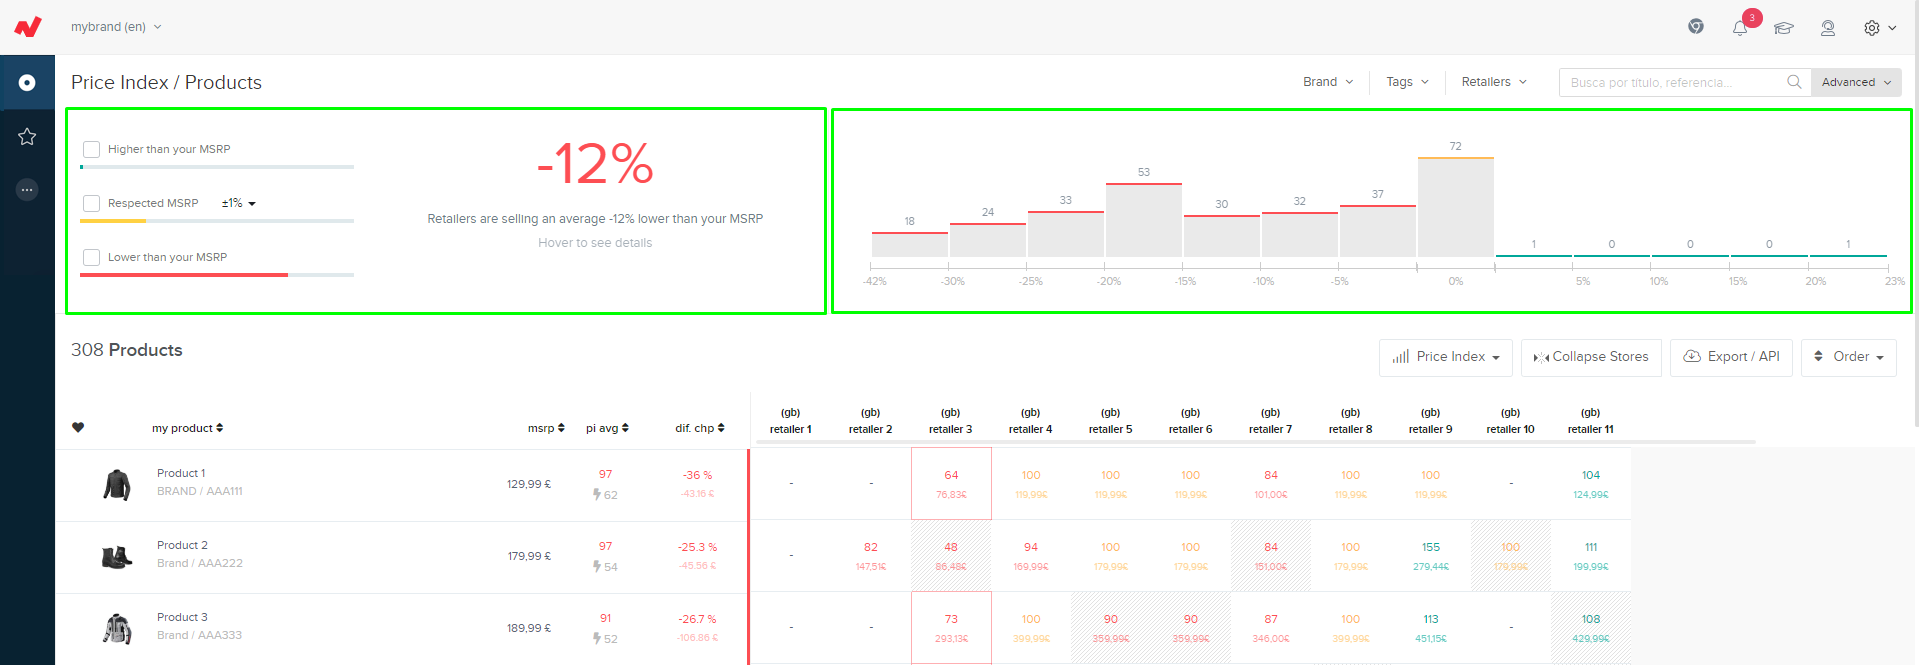 graph and action buttons available in netrivals